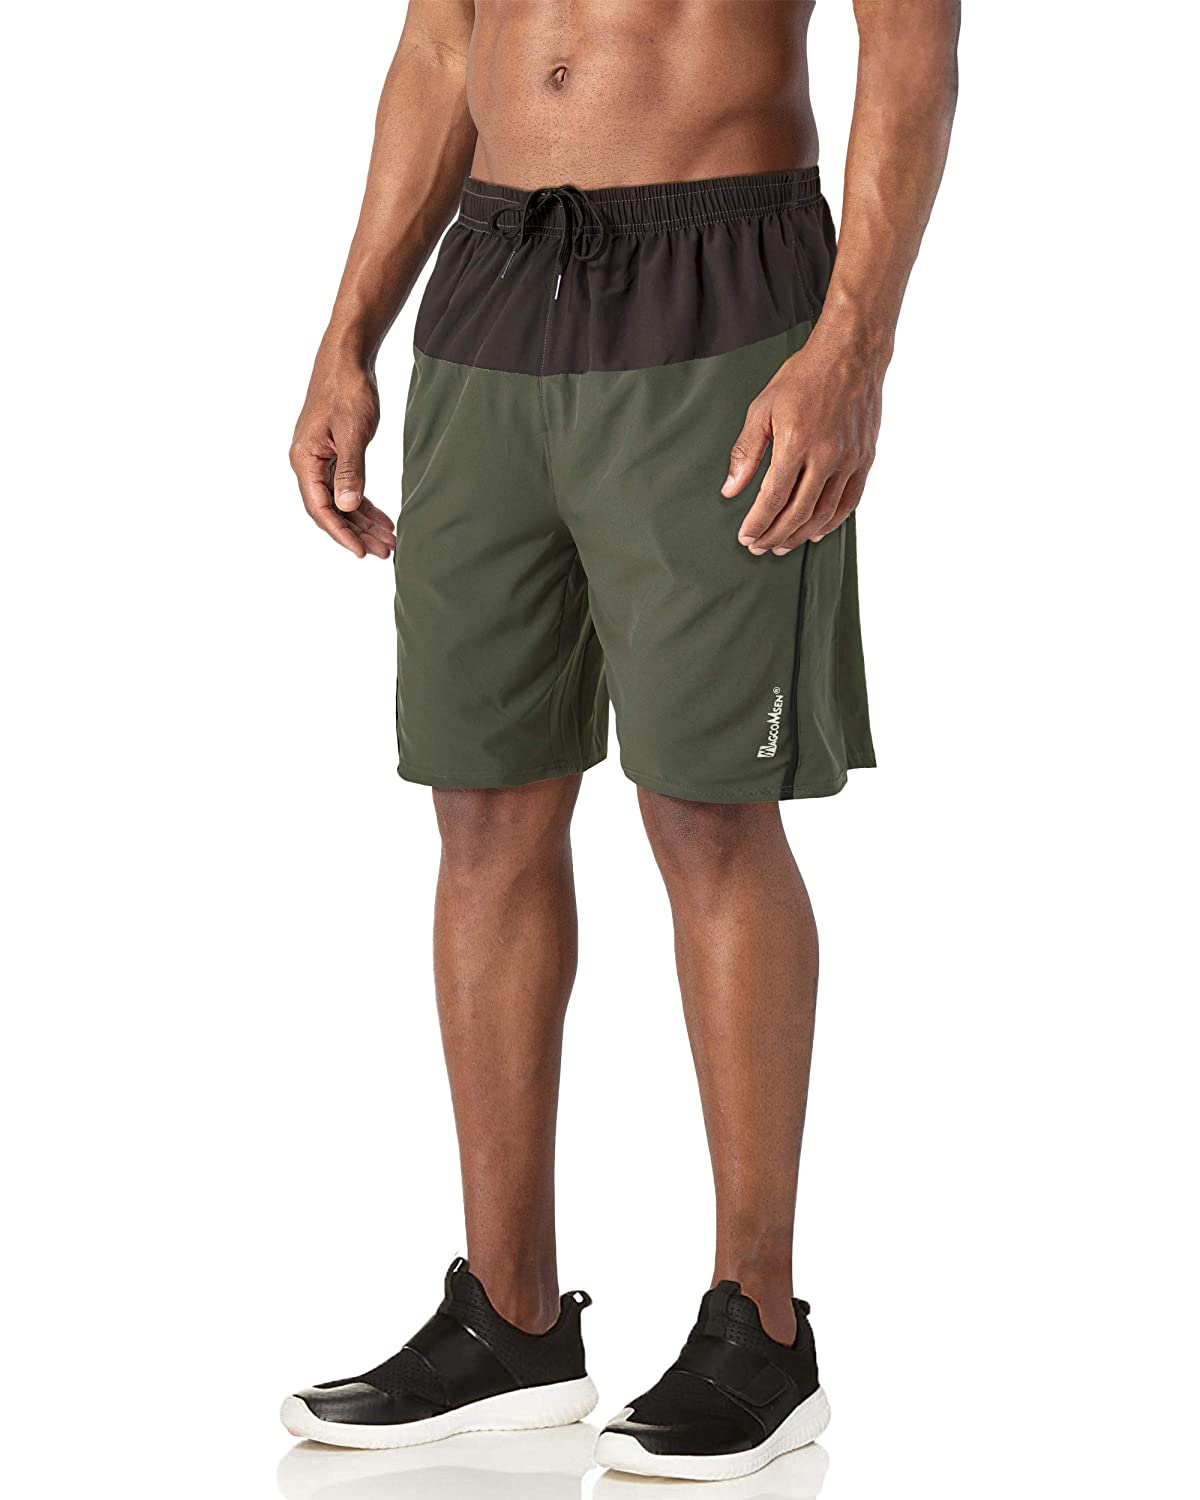 Jogging MAGCOMSEN Mens Running Shorts with Pockets Mesh Liner Quick Dry Shorts for Workout Hiking